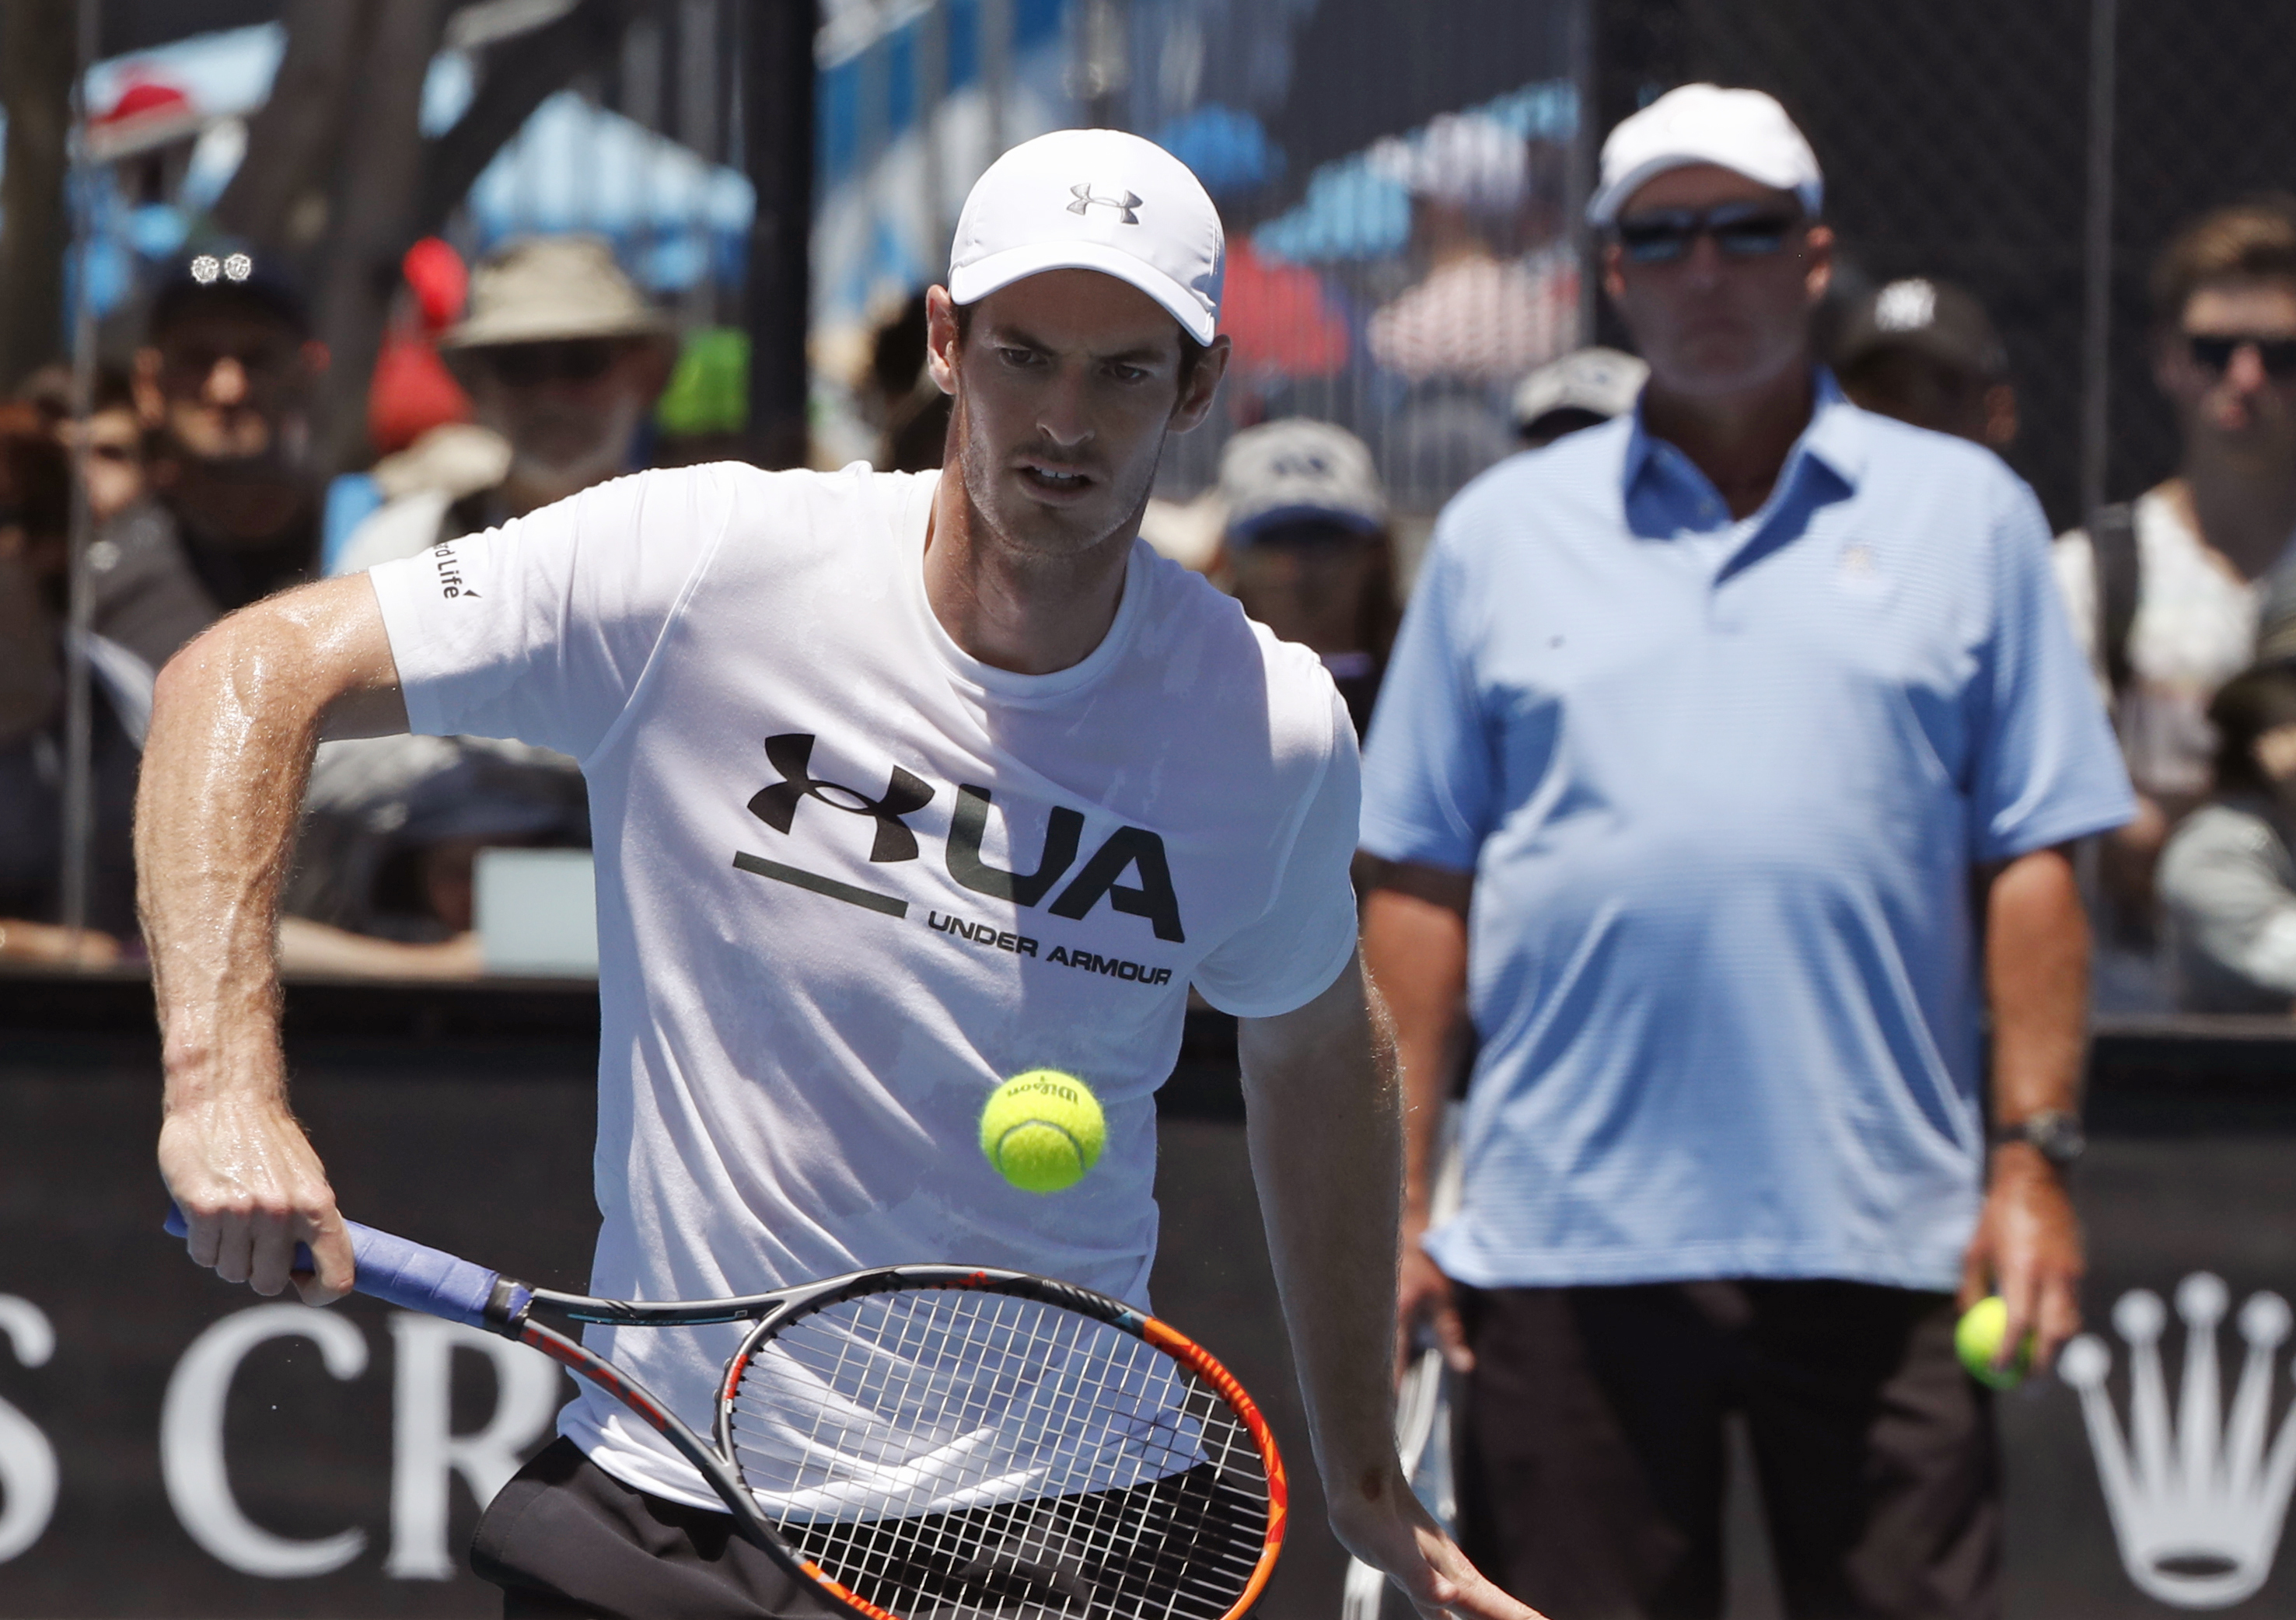 Britain's Andy Murray is watched by his coach Ivan Lendl during a practice session at the Australian Open tennis championships in Melbourne, Australia, Thursday, Jan. 19, 2017. Murray will play United States' Sam Querrey in third round match on Friday, Ja